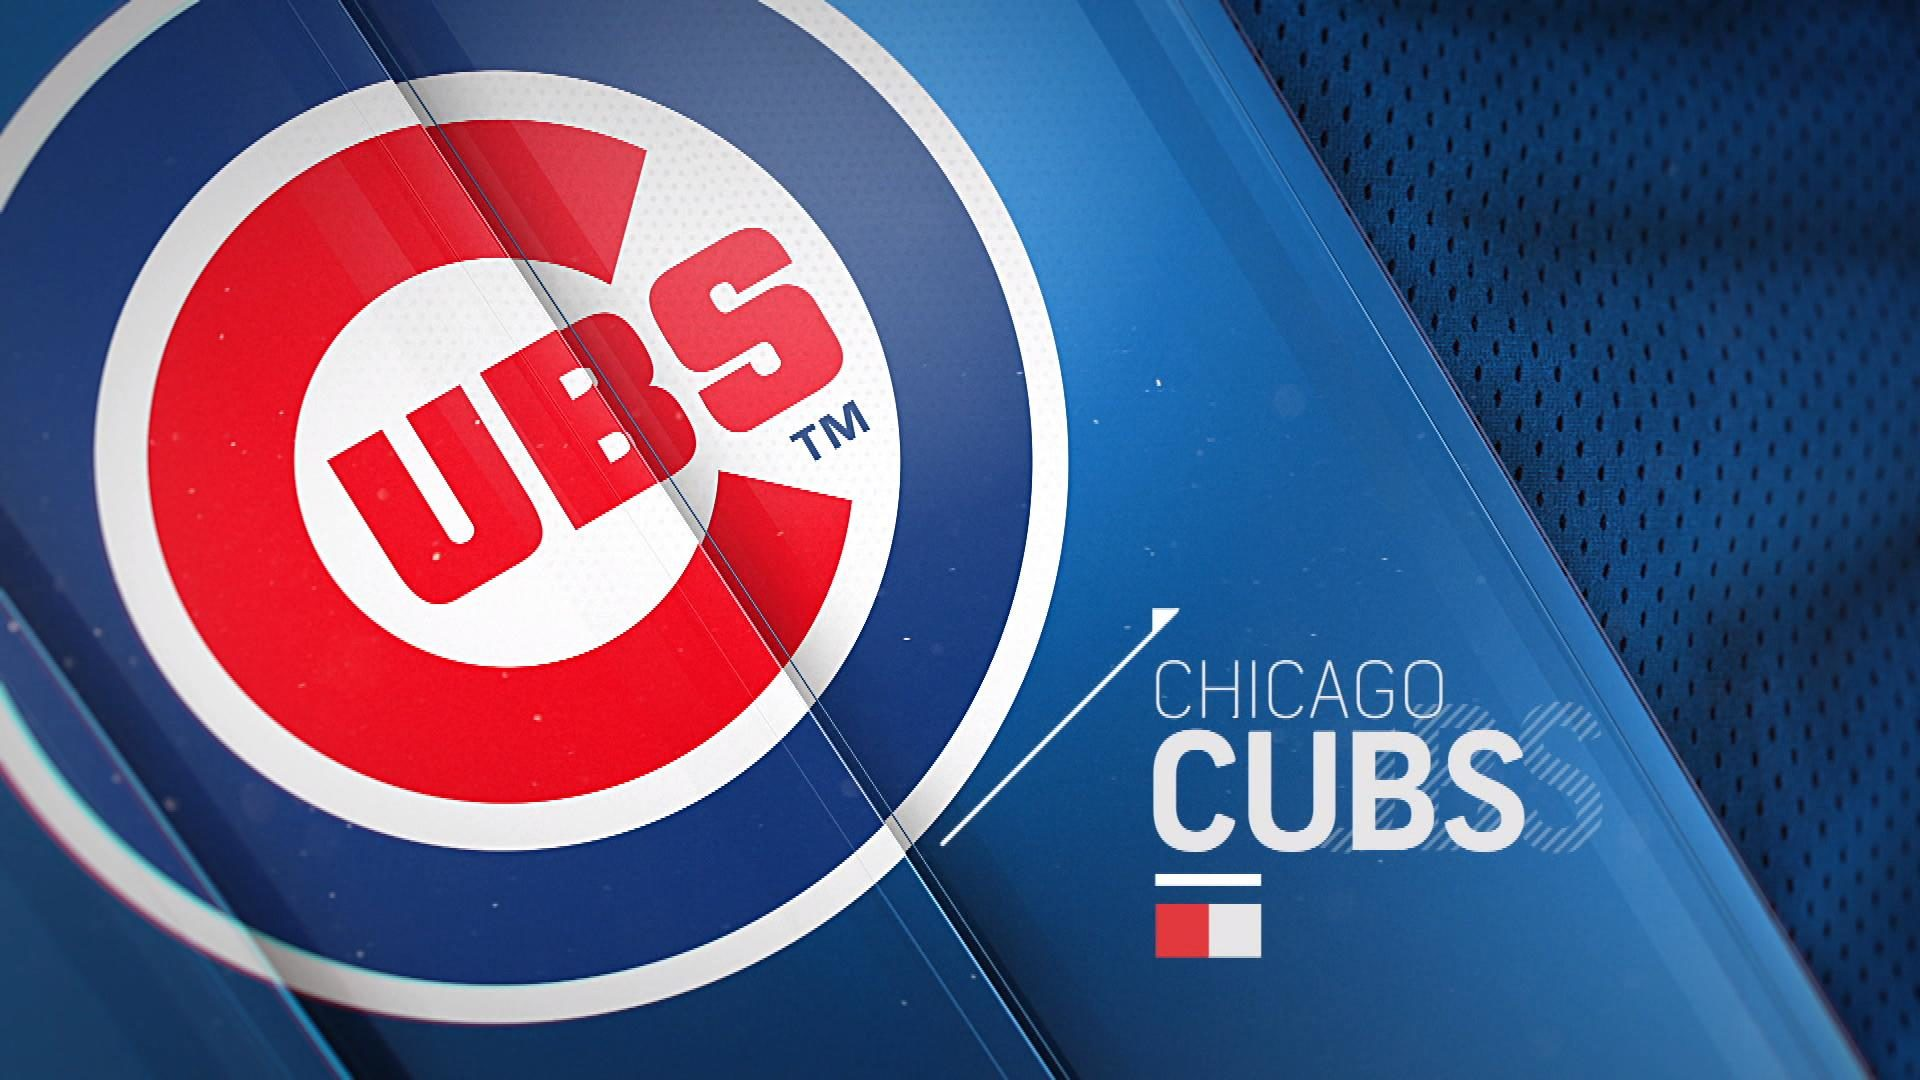 The official website of the Chicago Cubs with the most uptodate information on scores schedule stats tickets and team news